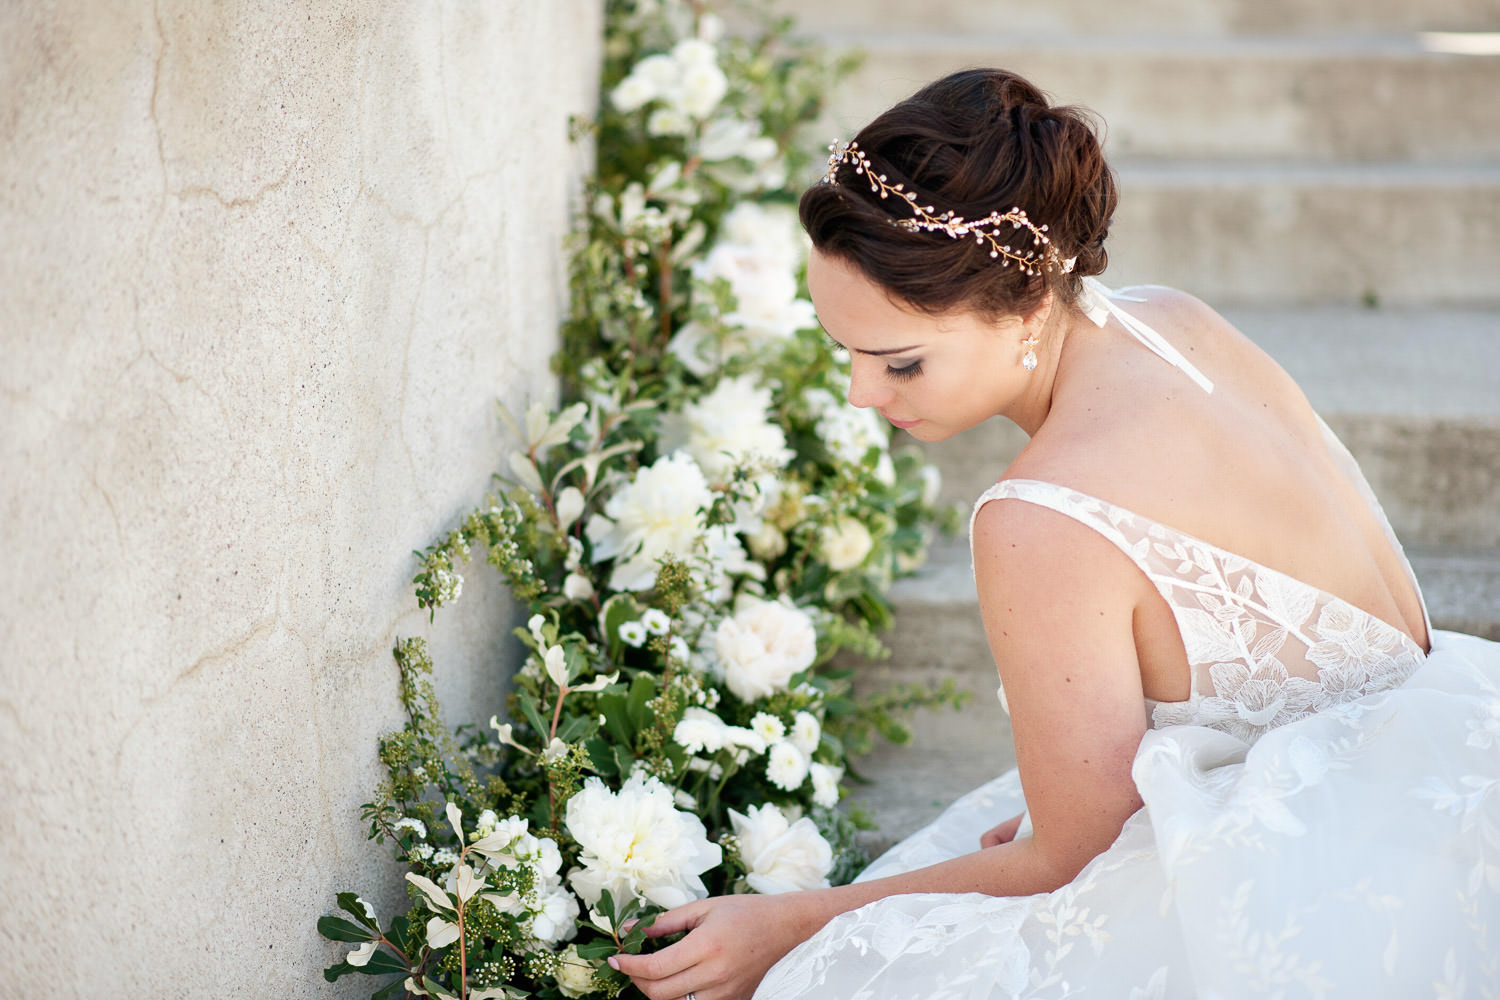 classic bride with garden-inspired flowers captured by Tara Whittaker Photography